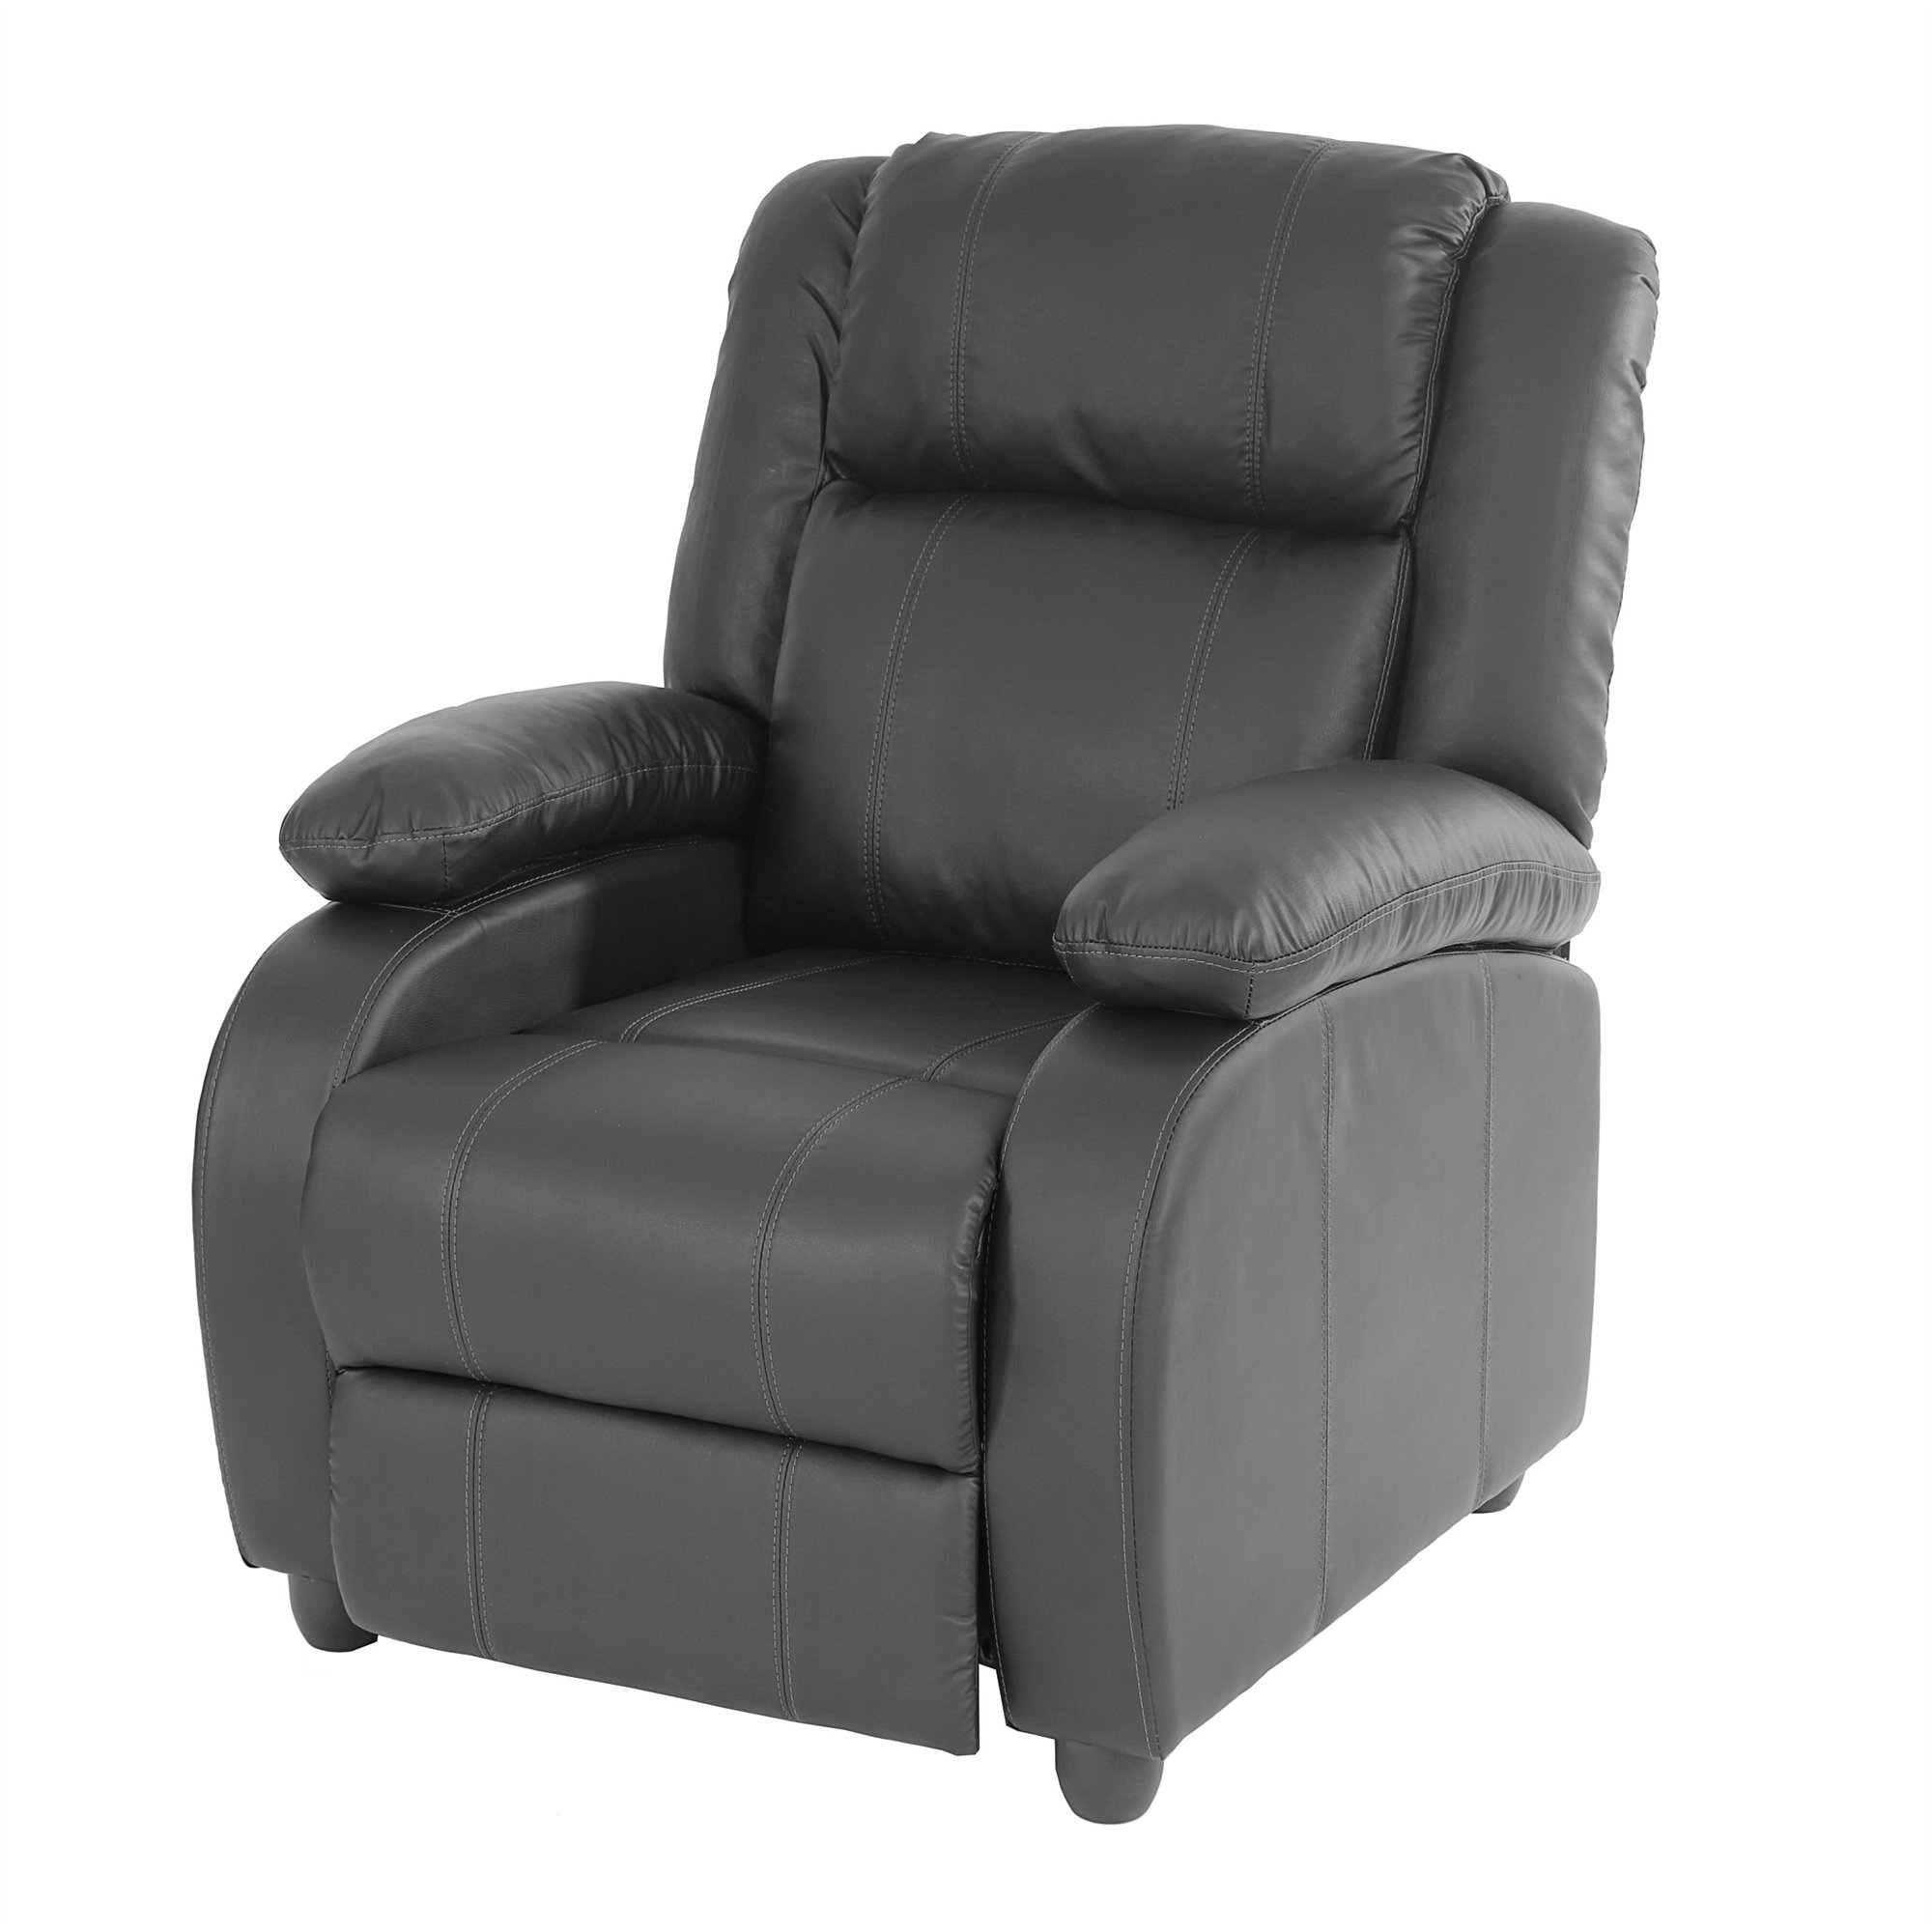 sill n relax reclinable lincon en color negro sillon